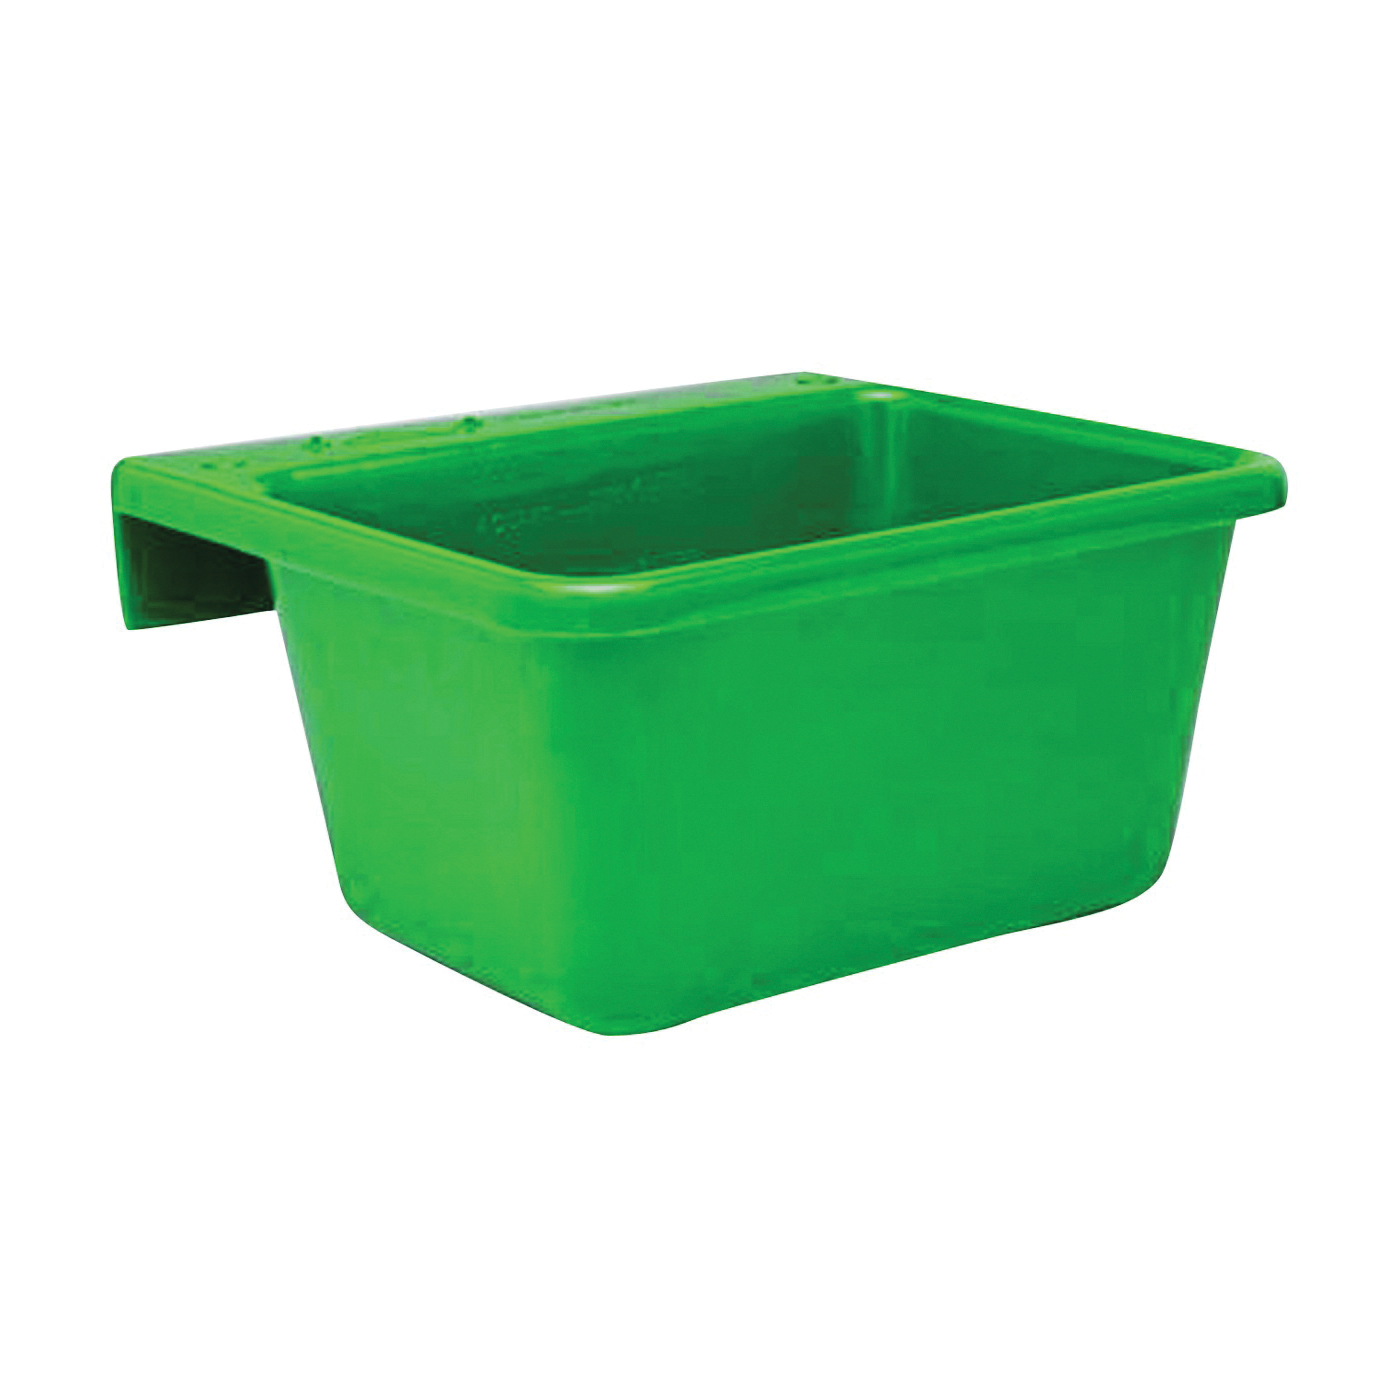 Picture of FORTEX-FORTIFLEX 1306603 Pet Feeder, S, 5 qt Volume, Green